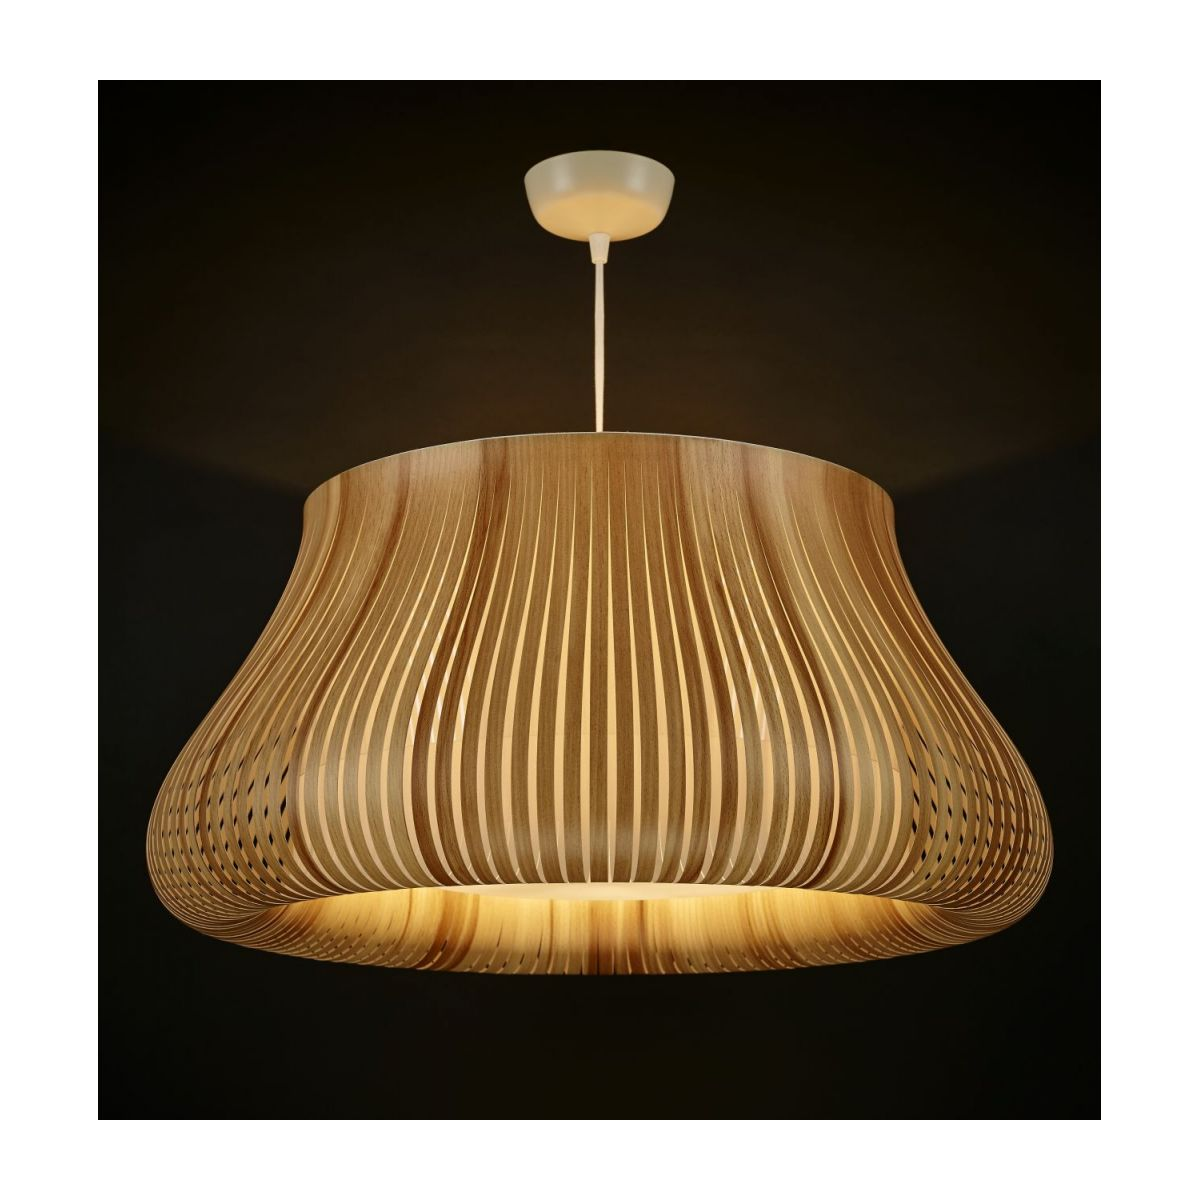 Ceiling lamp in PVC, natural wood n°2